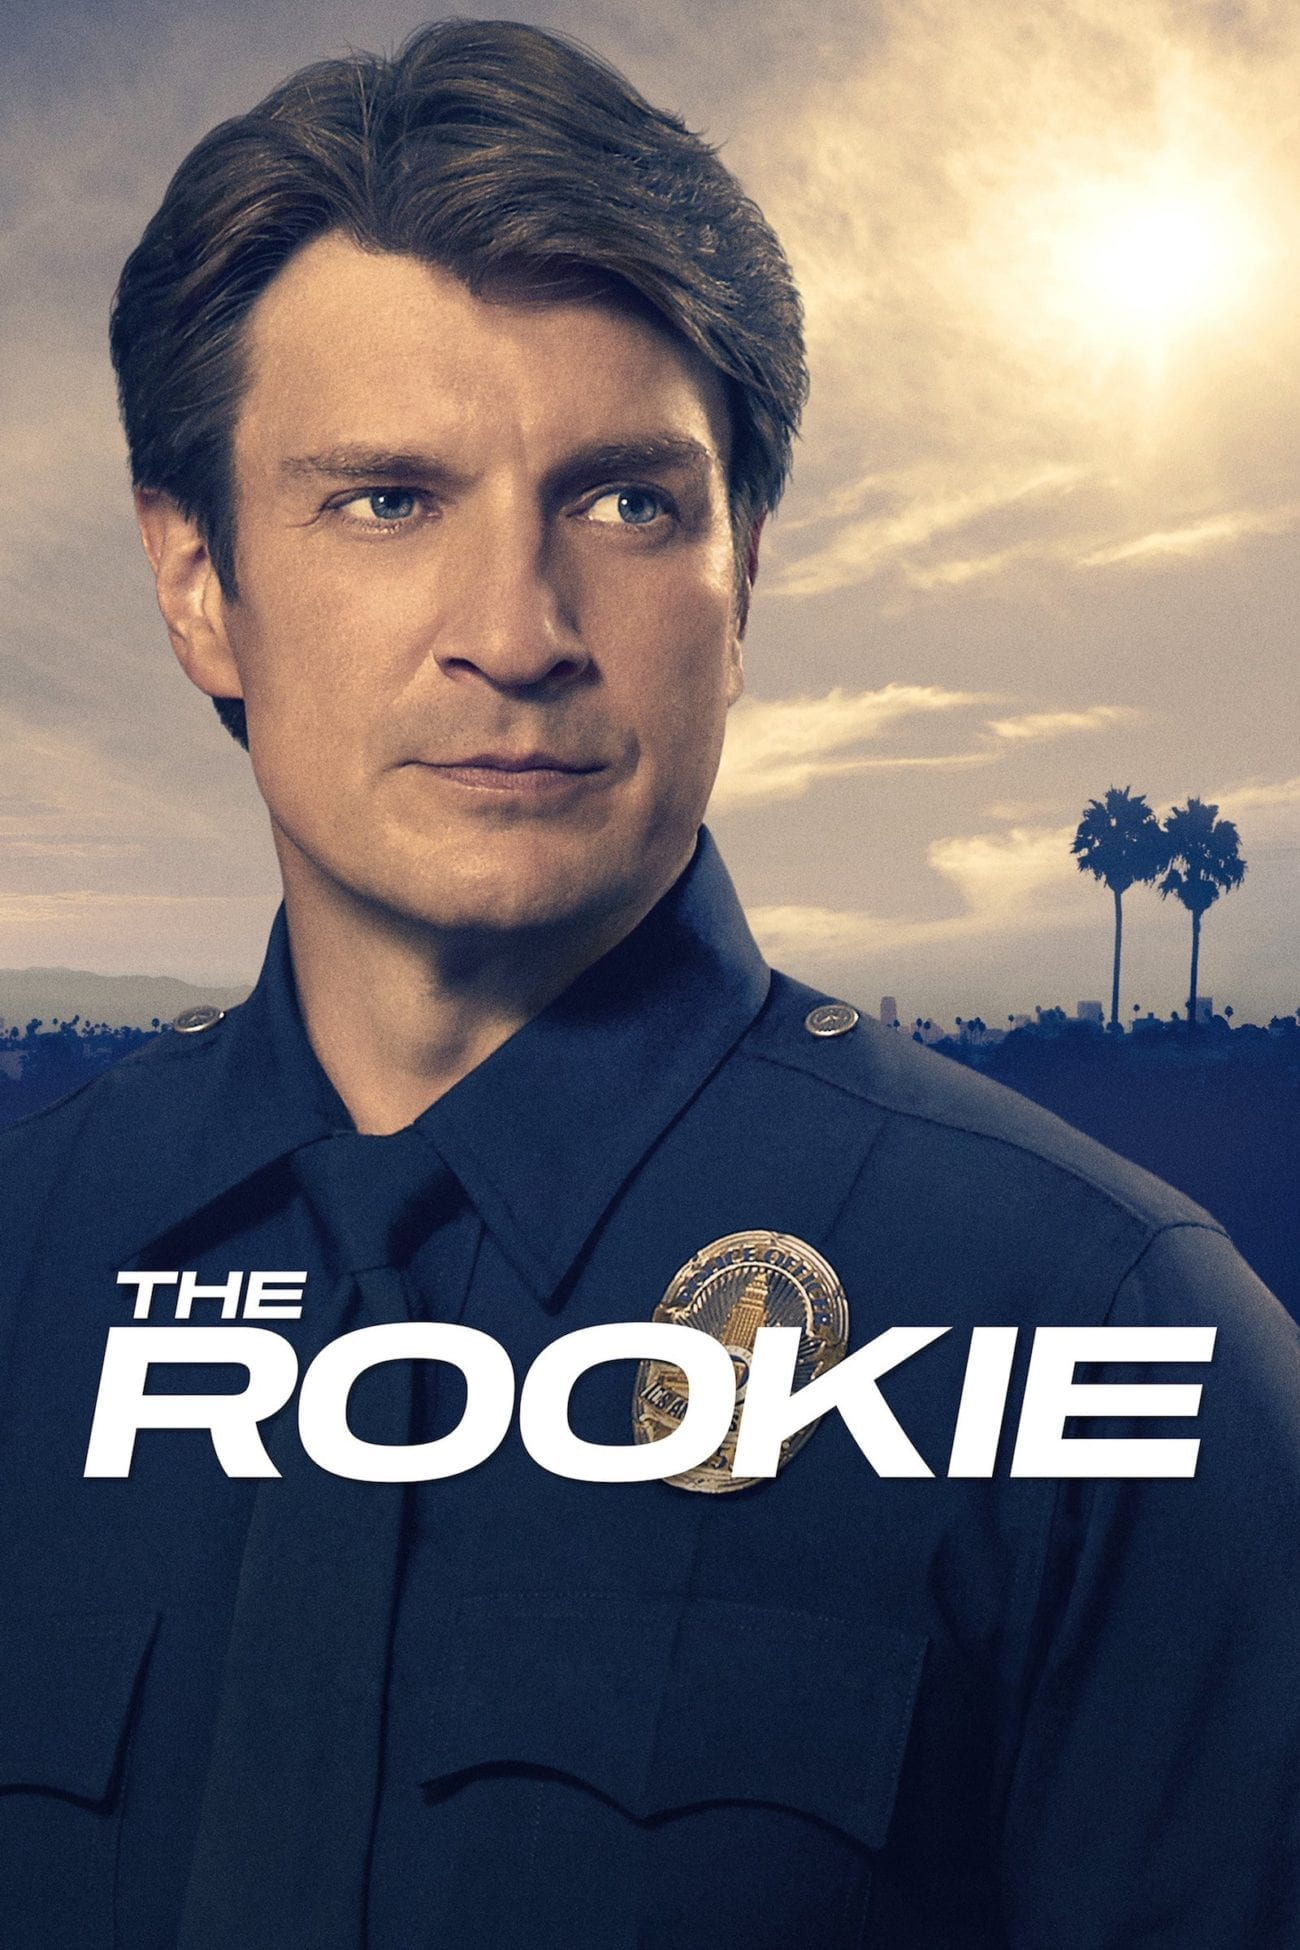 After eight years on ABC's Castle, Nathan Fillion has jumped swiftly into in the network's new crime dramedy, 'The Rookie'.